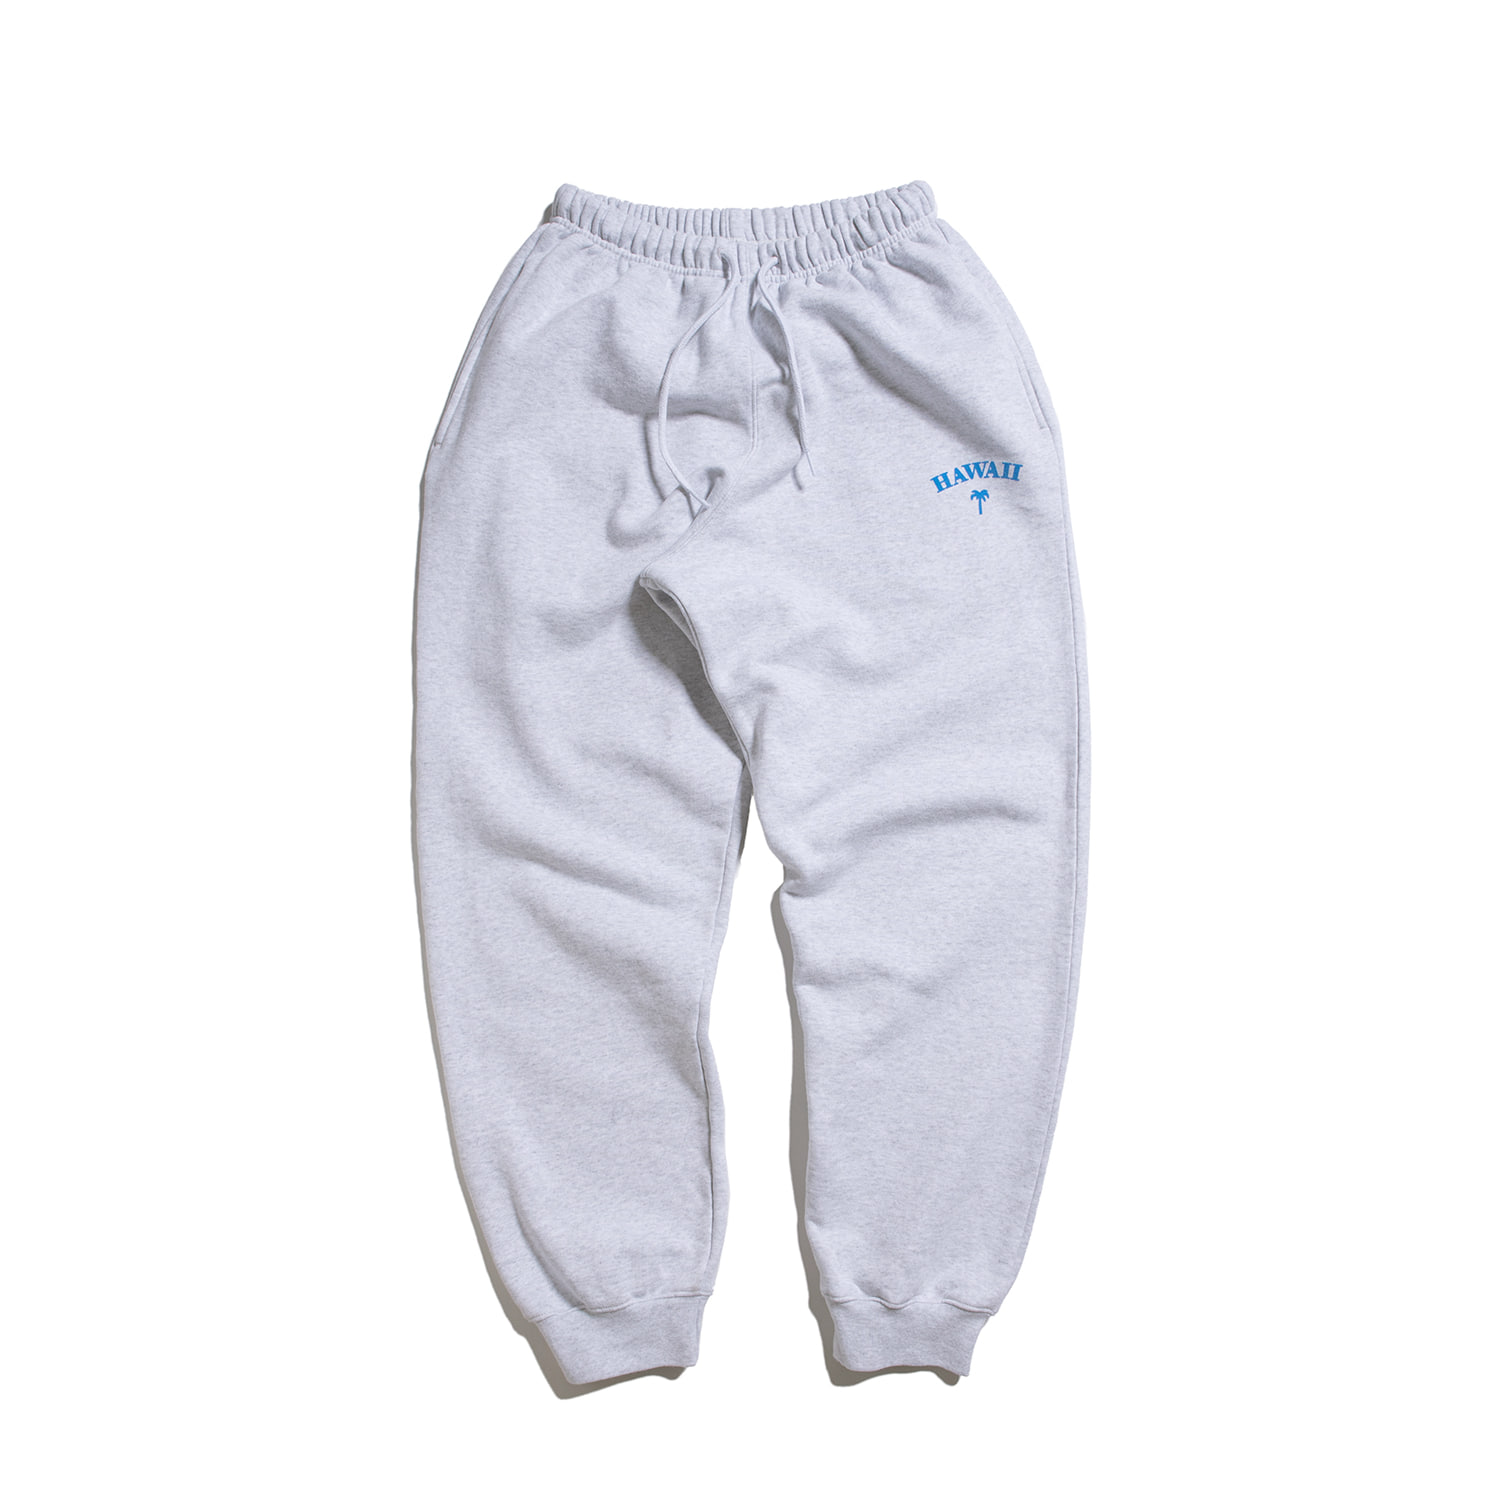 "Hawaii Sweat Pants ""1% MELANGE"""